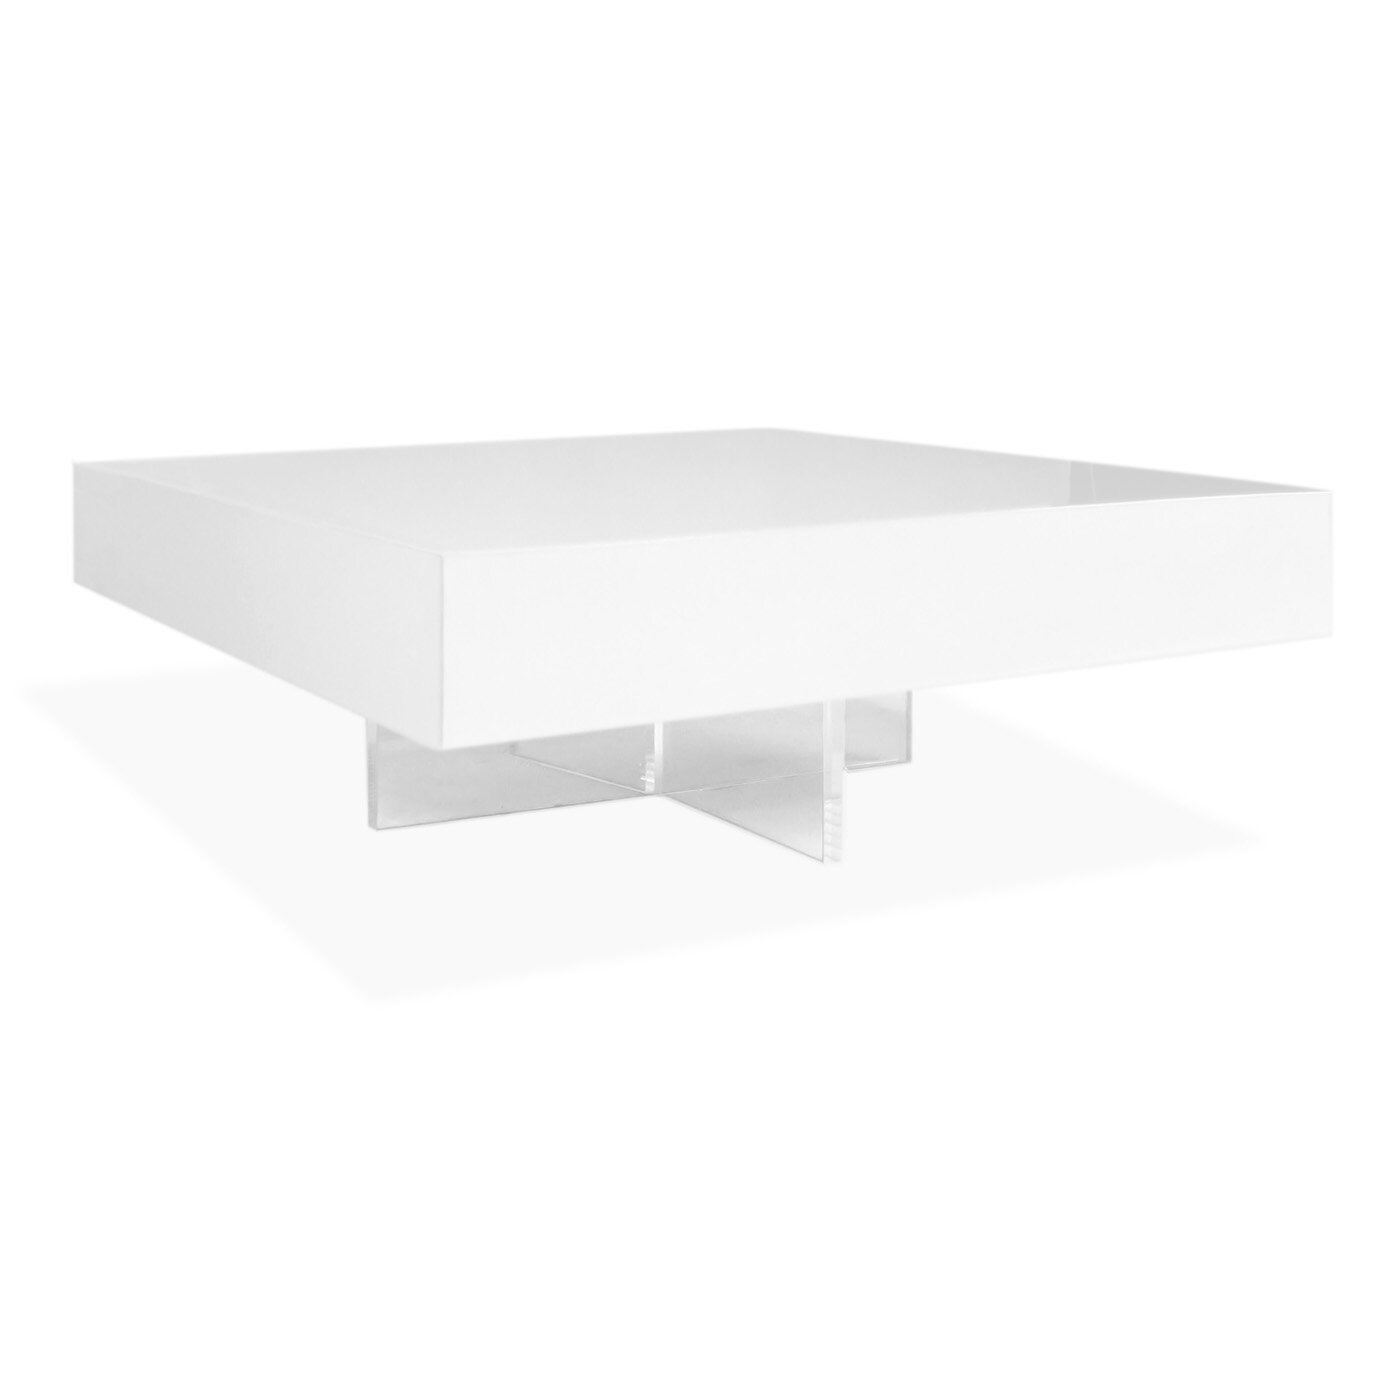 Jonathan Adler Lacquer Block Coffee Table Reviews Wayfair